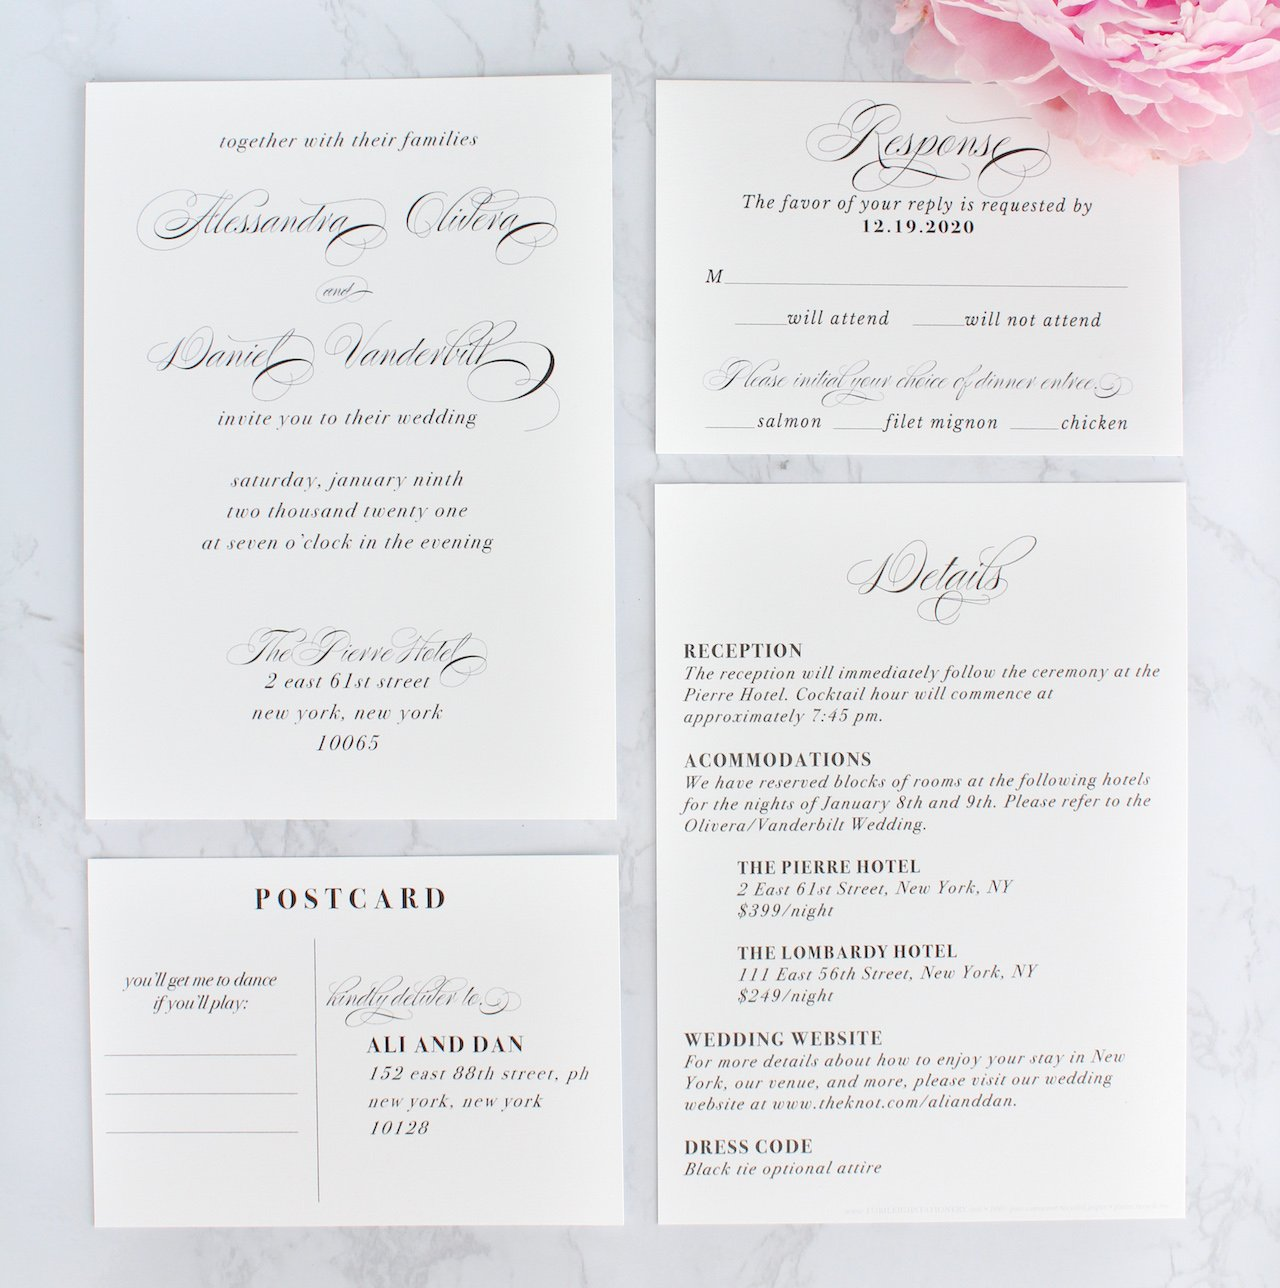 elegant wedding invitations with calligraphy script, sustainably printed on recycled paper